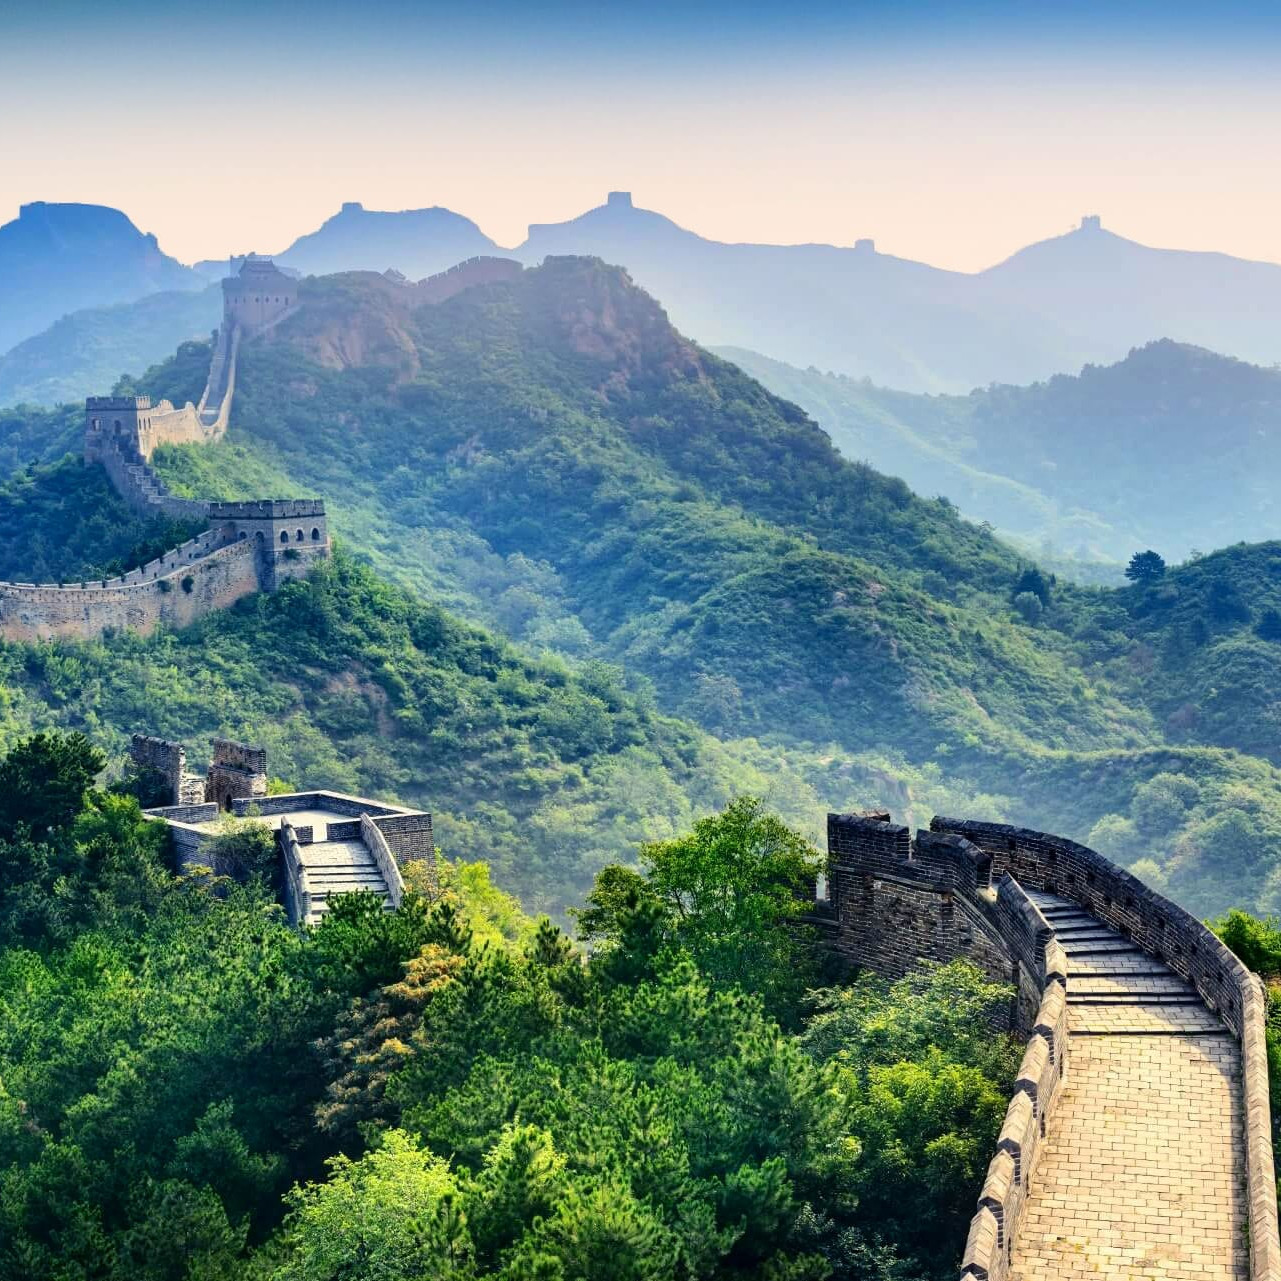 The great wall china asia travel guide